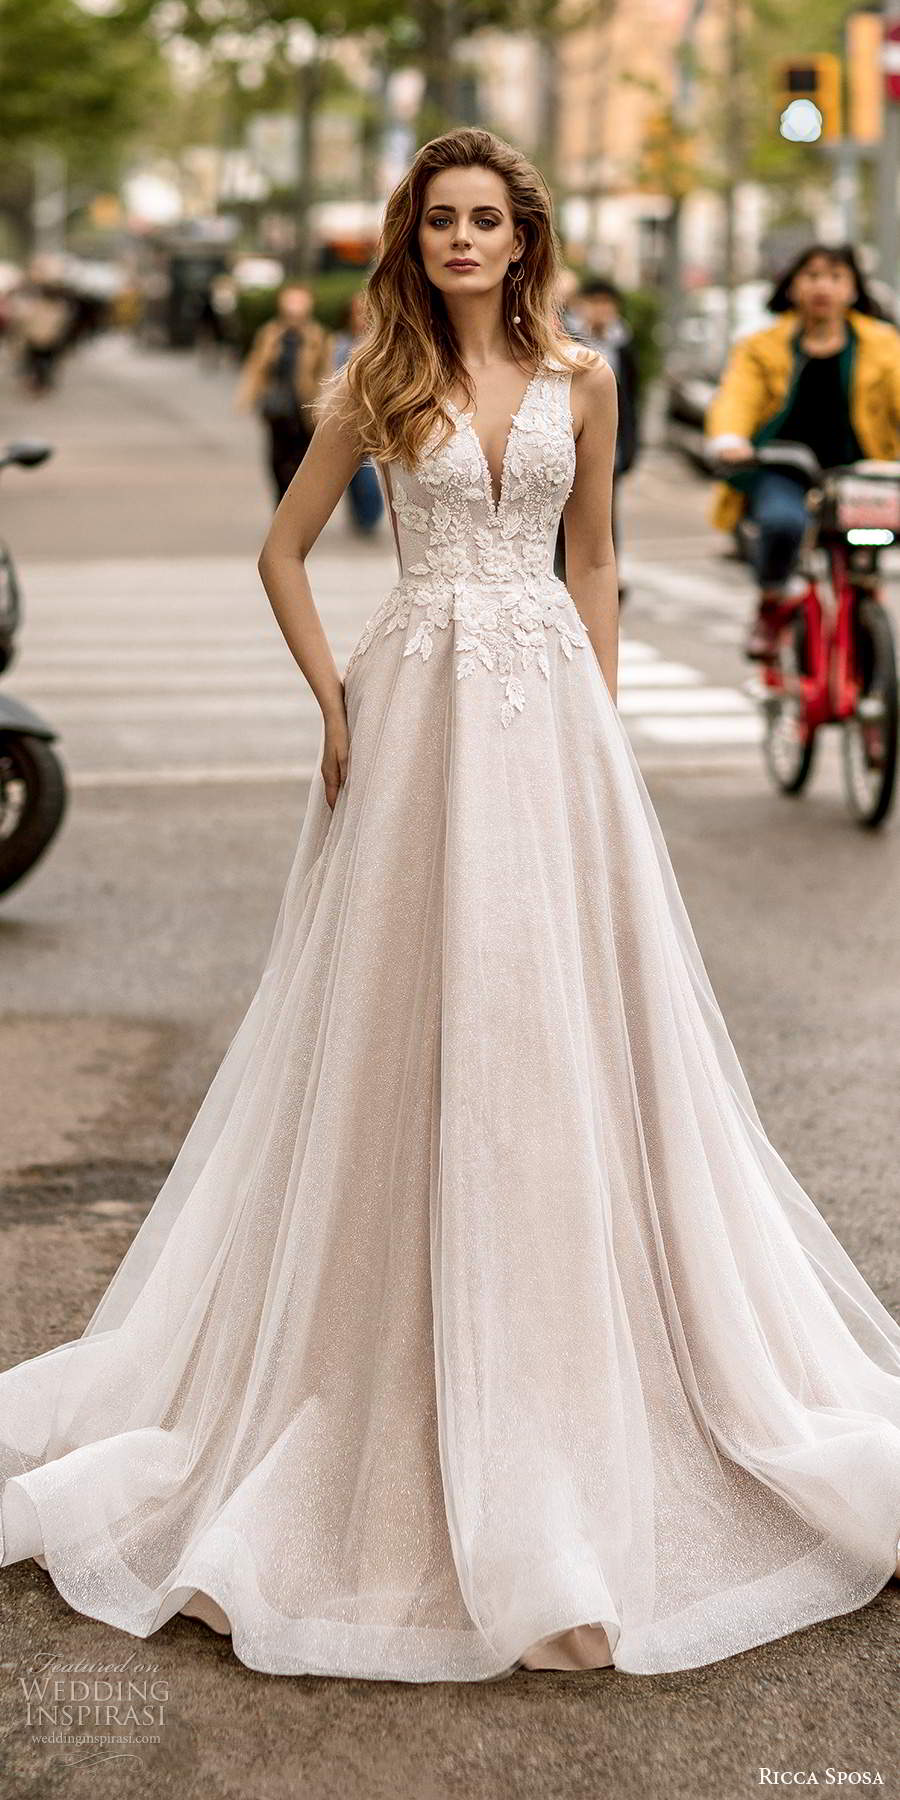 ricca sposa 2020 barcelona bridal sleeveless thick straps plunging v neckline heavily embellished bodice side cutout a line ball gown wedding dress v back chapel train (21) mv